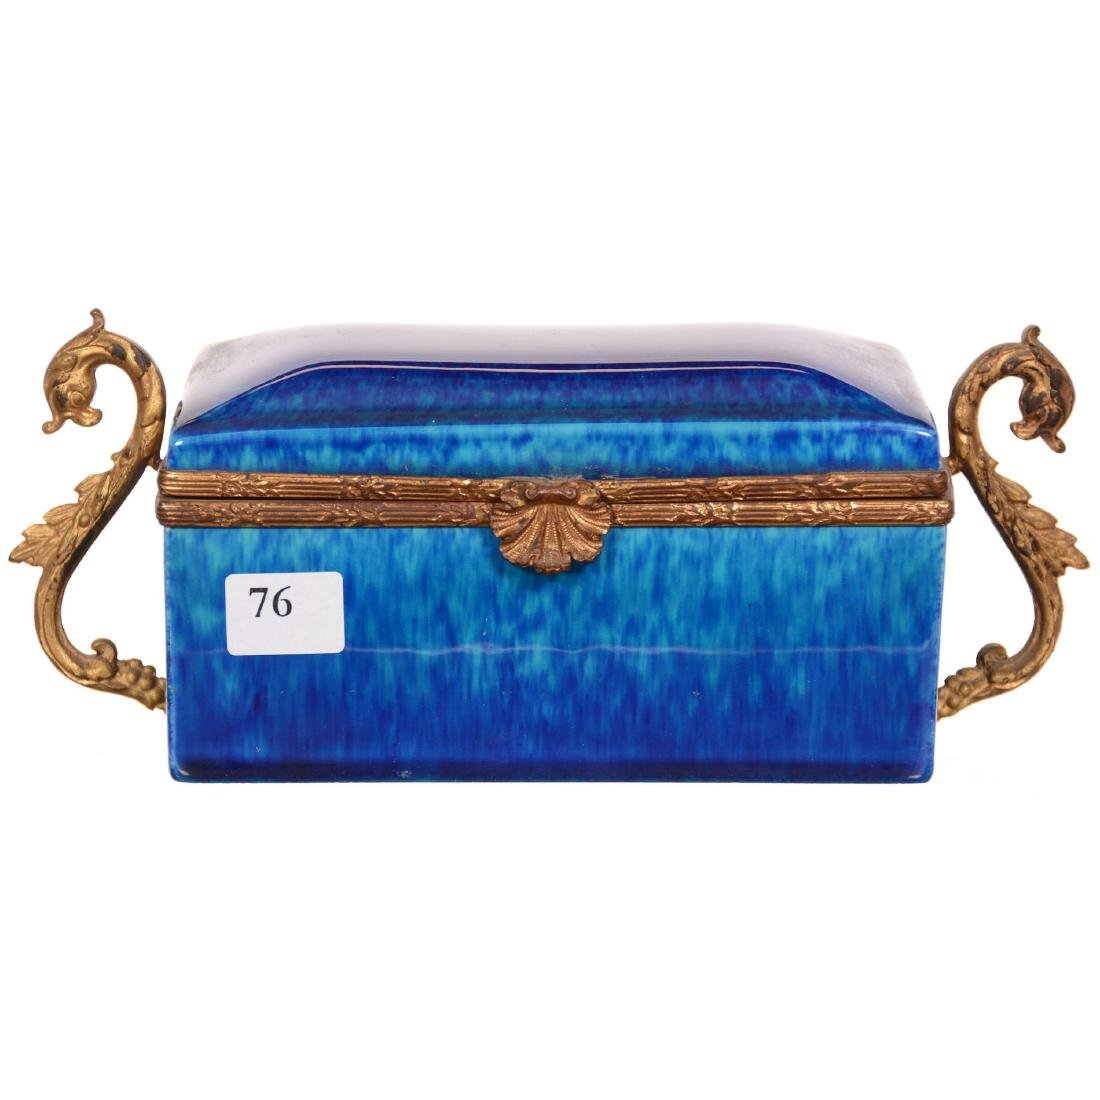 French Faience Pottery Hinged Box